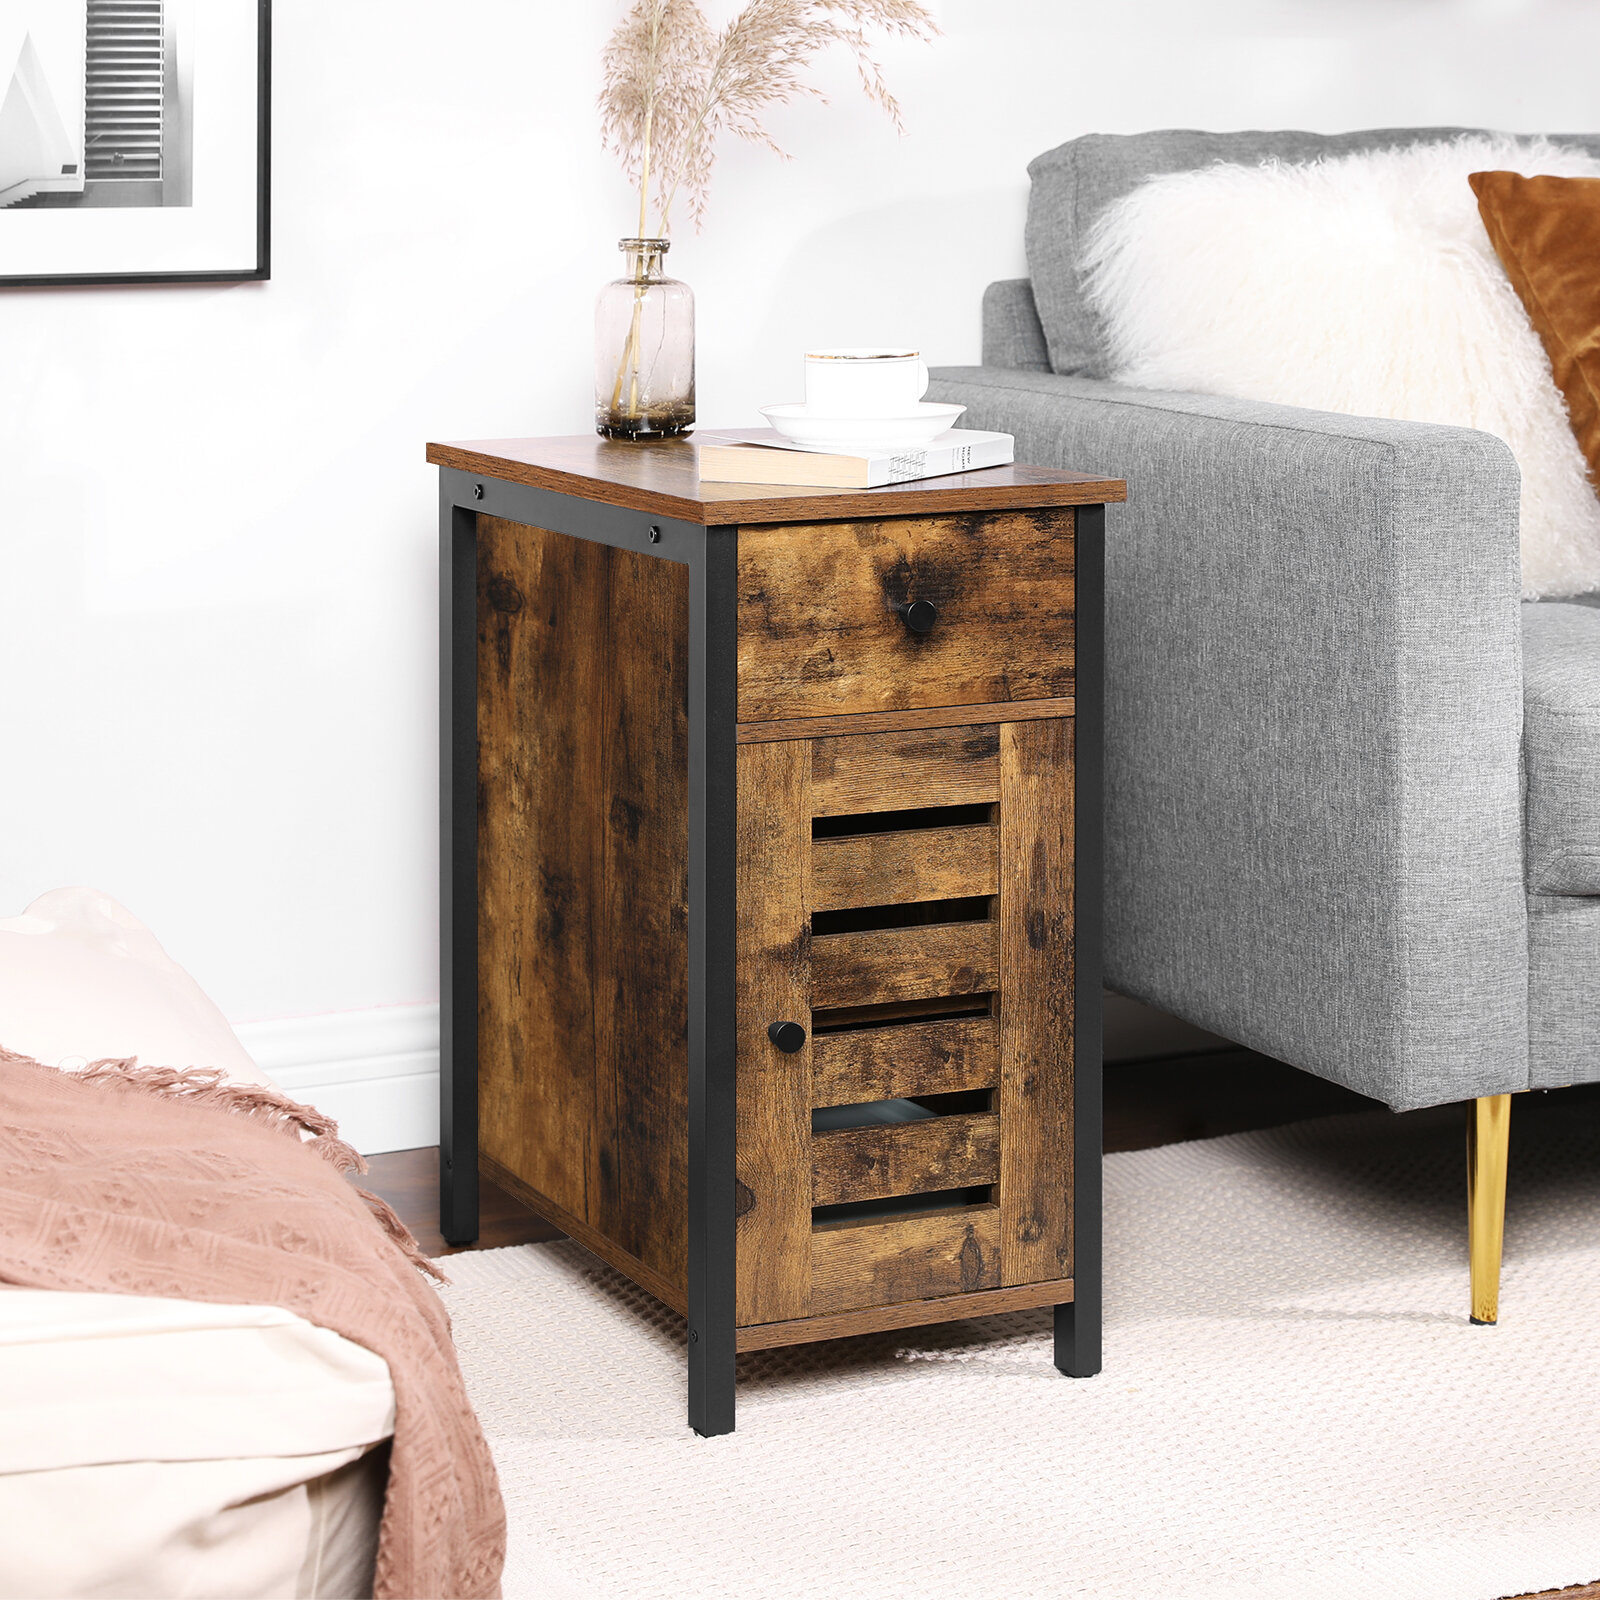 17 Stories Vasagle Lowell Narrow Side Table Nightstand With Drawer Shutter Door End Table For Small Spaces Living Room Industrial Style Rustic Brown And Black Ulet066b01 Reviews Wayfair Ca